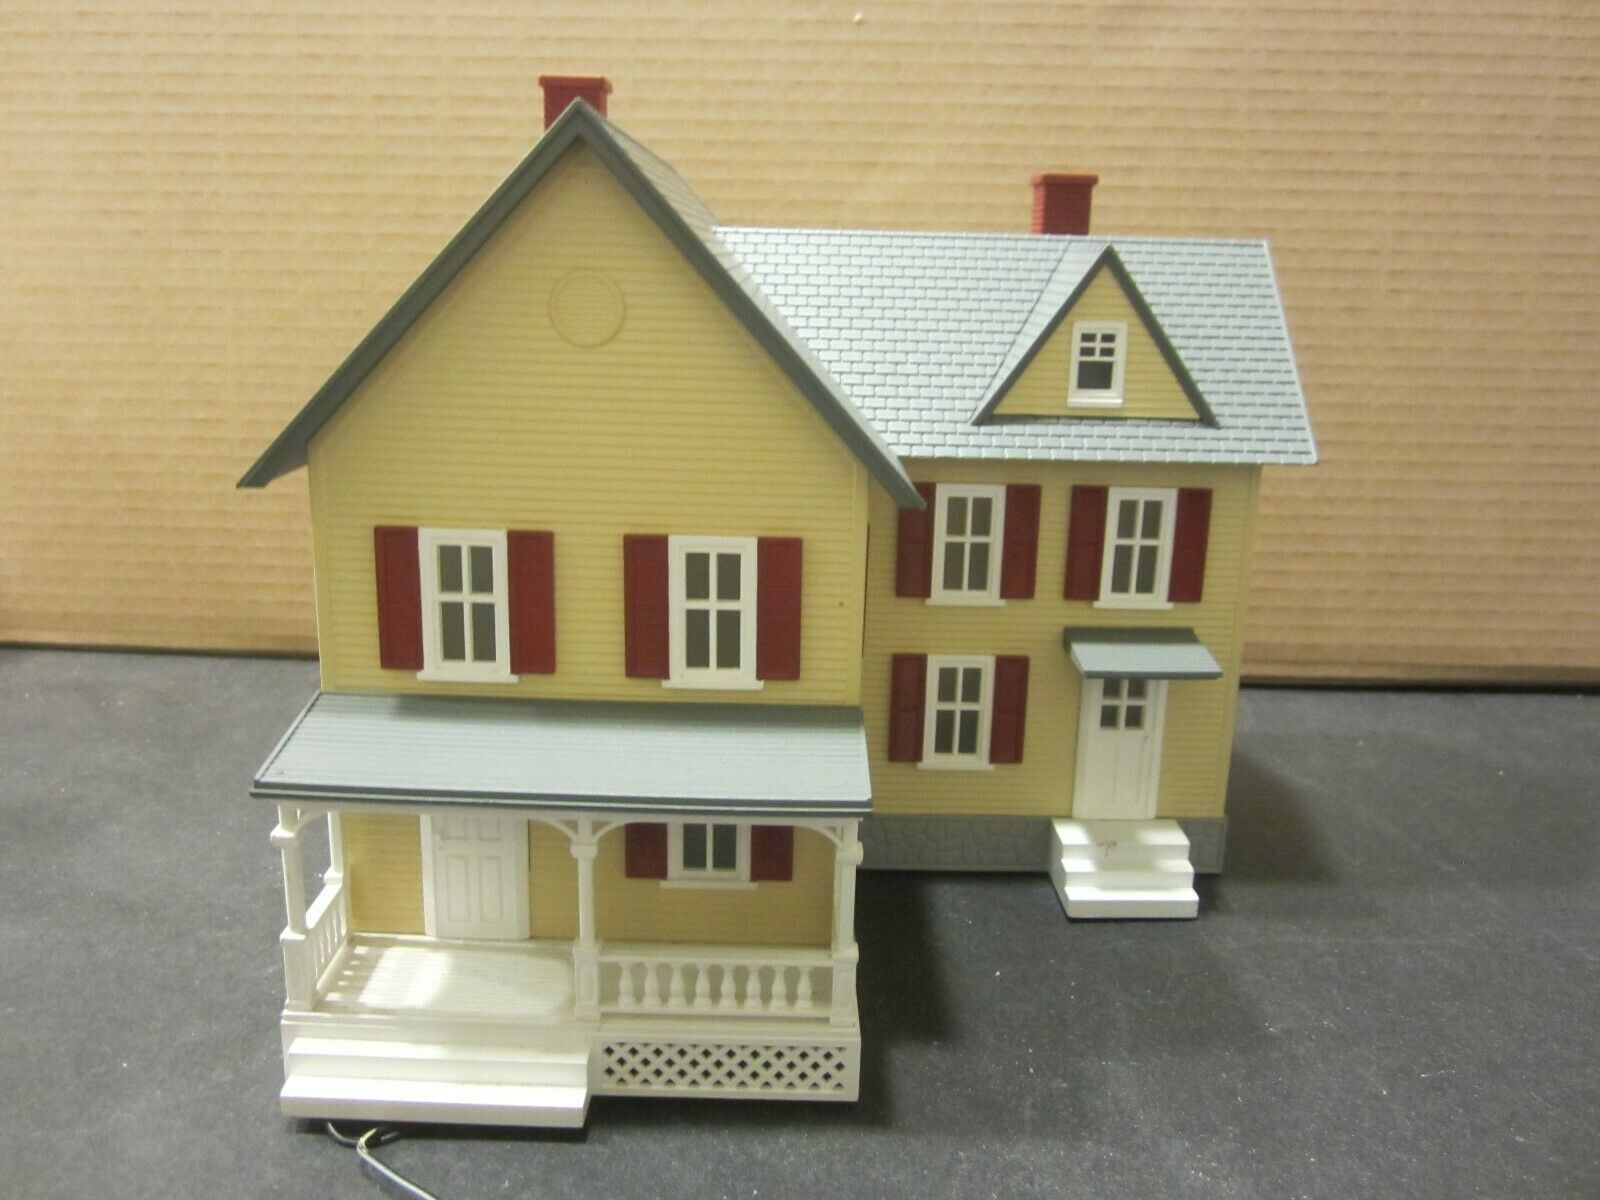 MTH RailKing Iighted 2 Story Farm House Yellow w  red Shutters